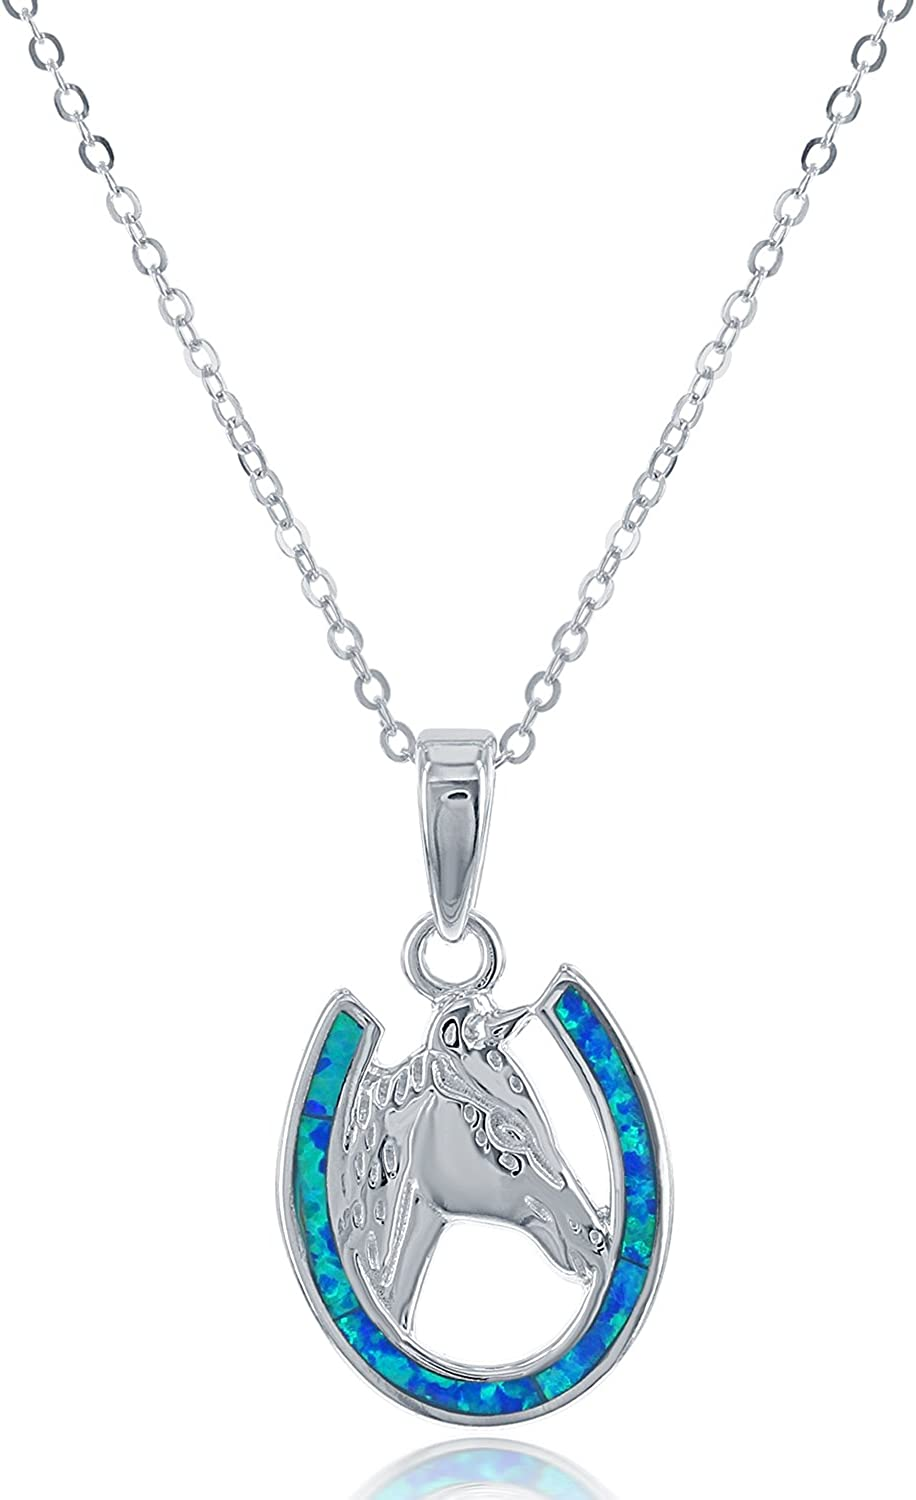 Silver Plated Horse Boot Horse Shoe Bracelet Beautiful Chain Charm Jewellery UK